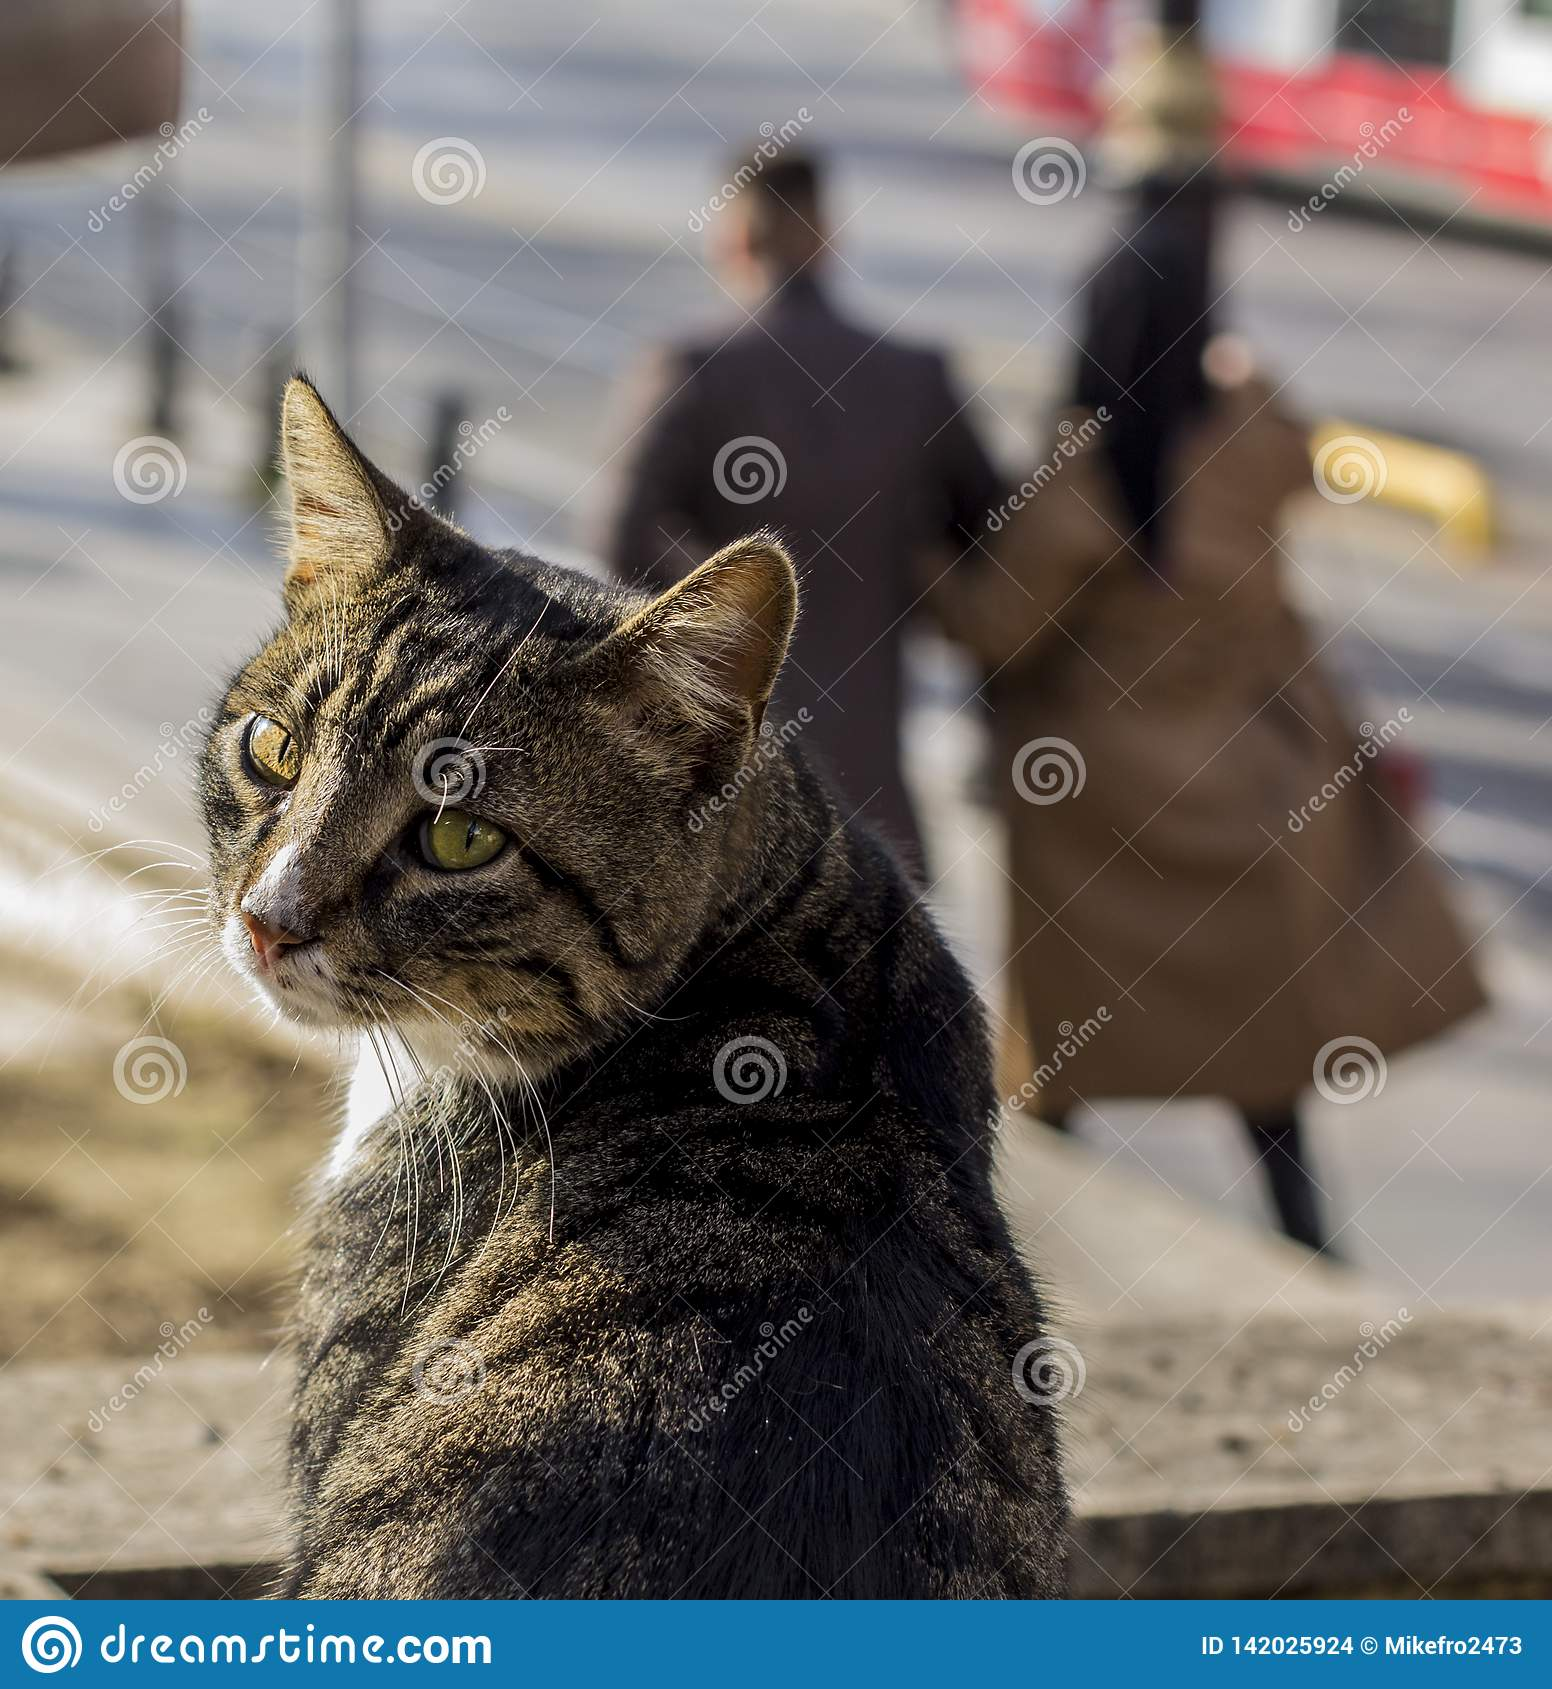 Homless cat turned and looked. blurred background